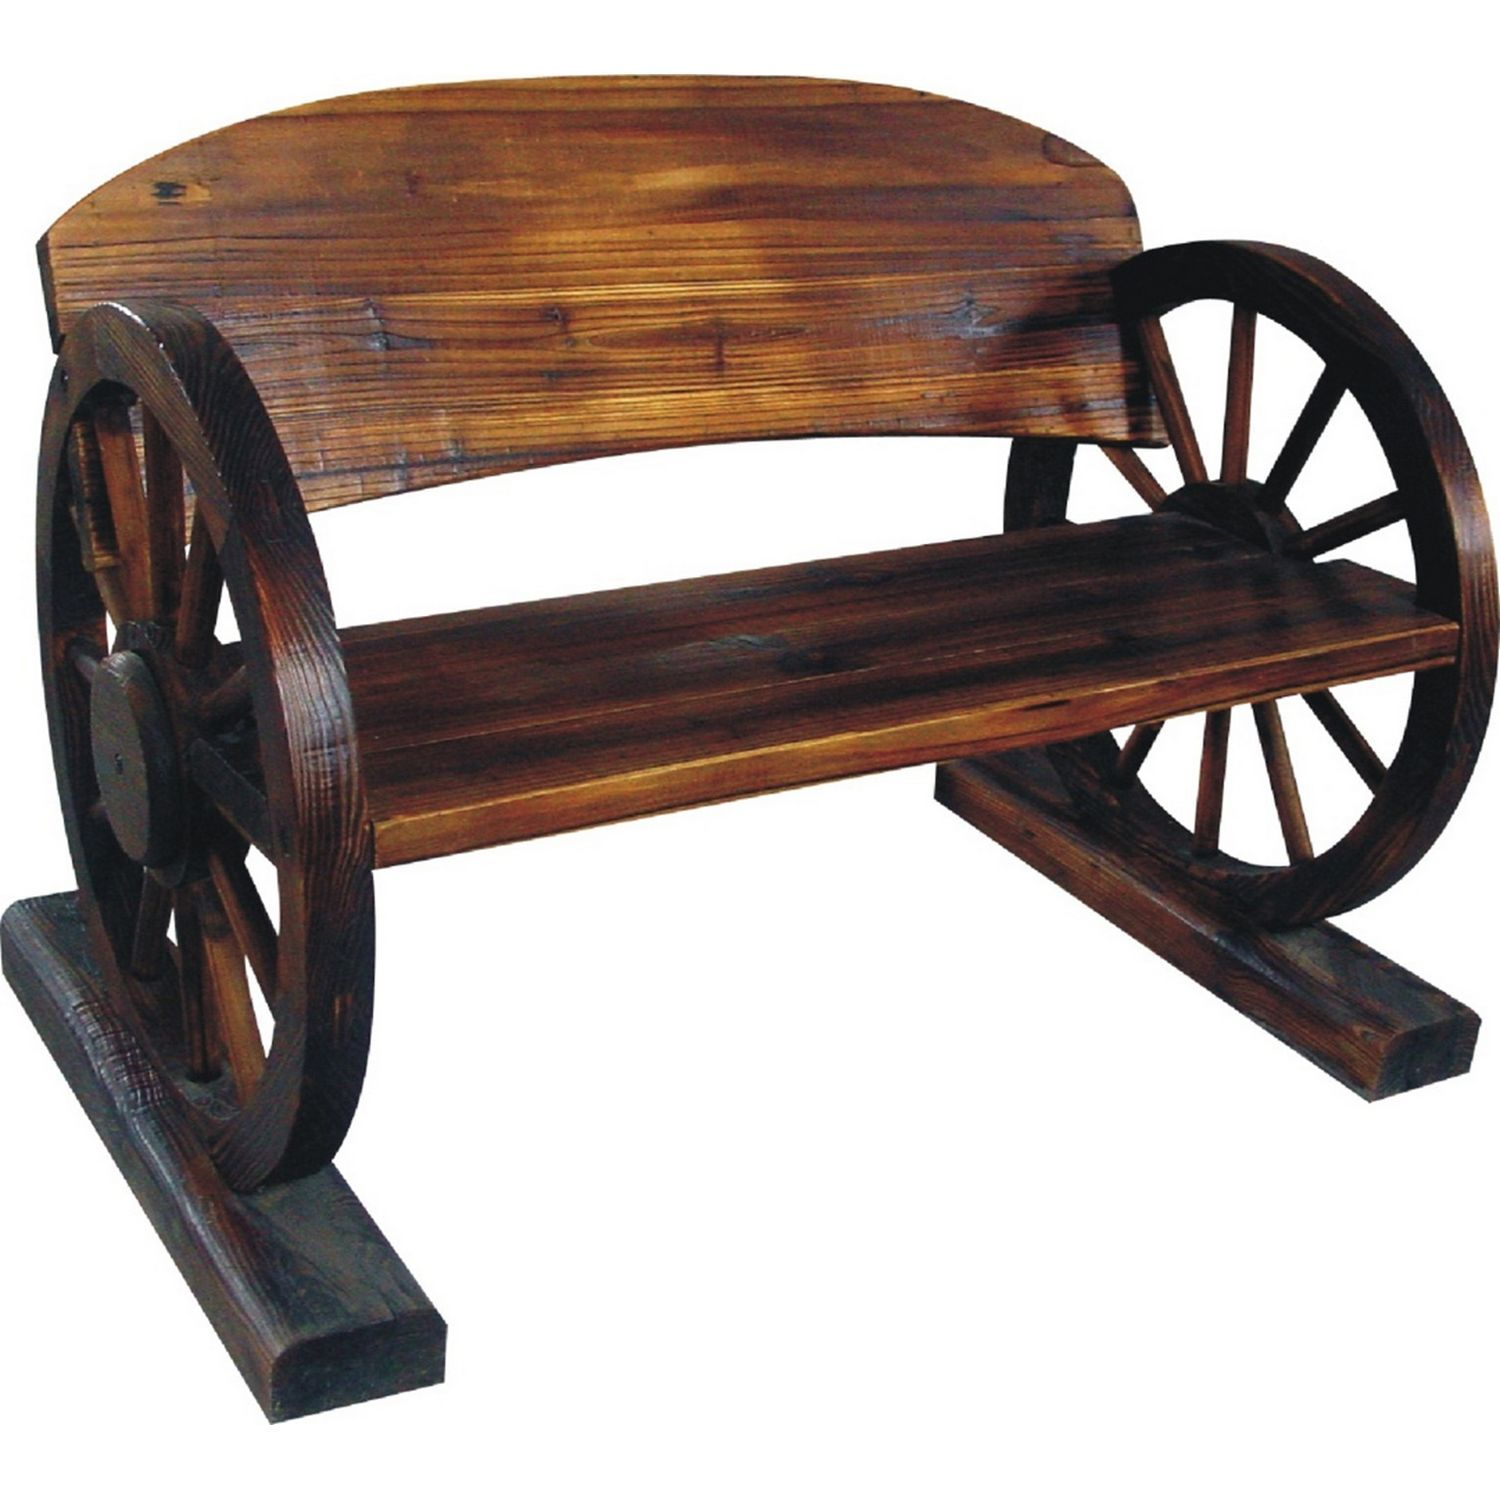 Wagon Wheel Garden Bench | The Range | £50